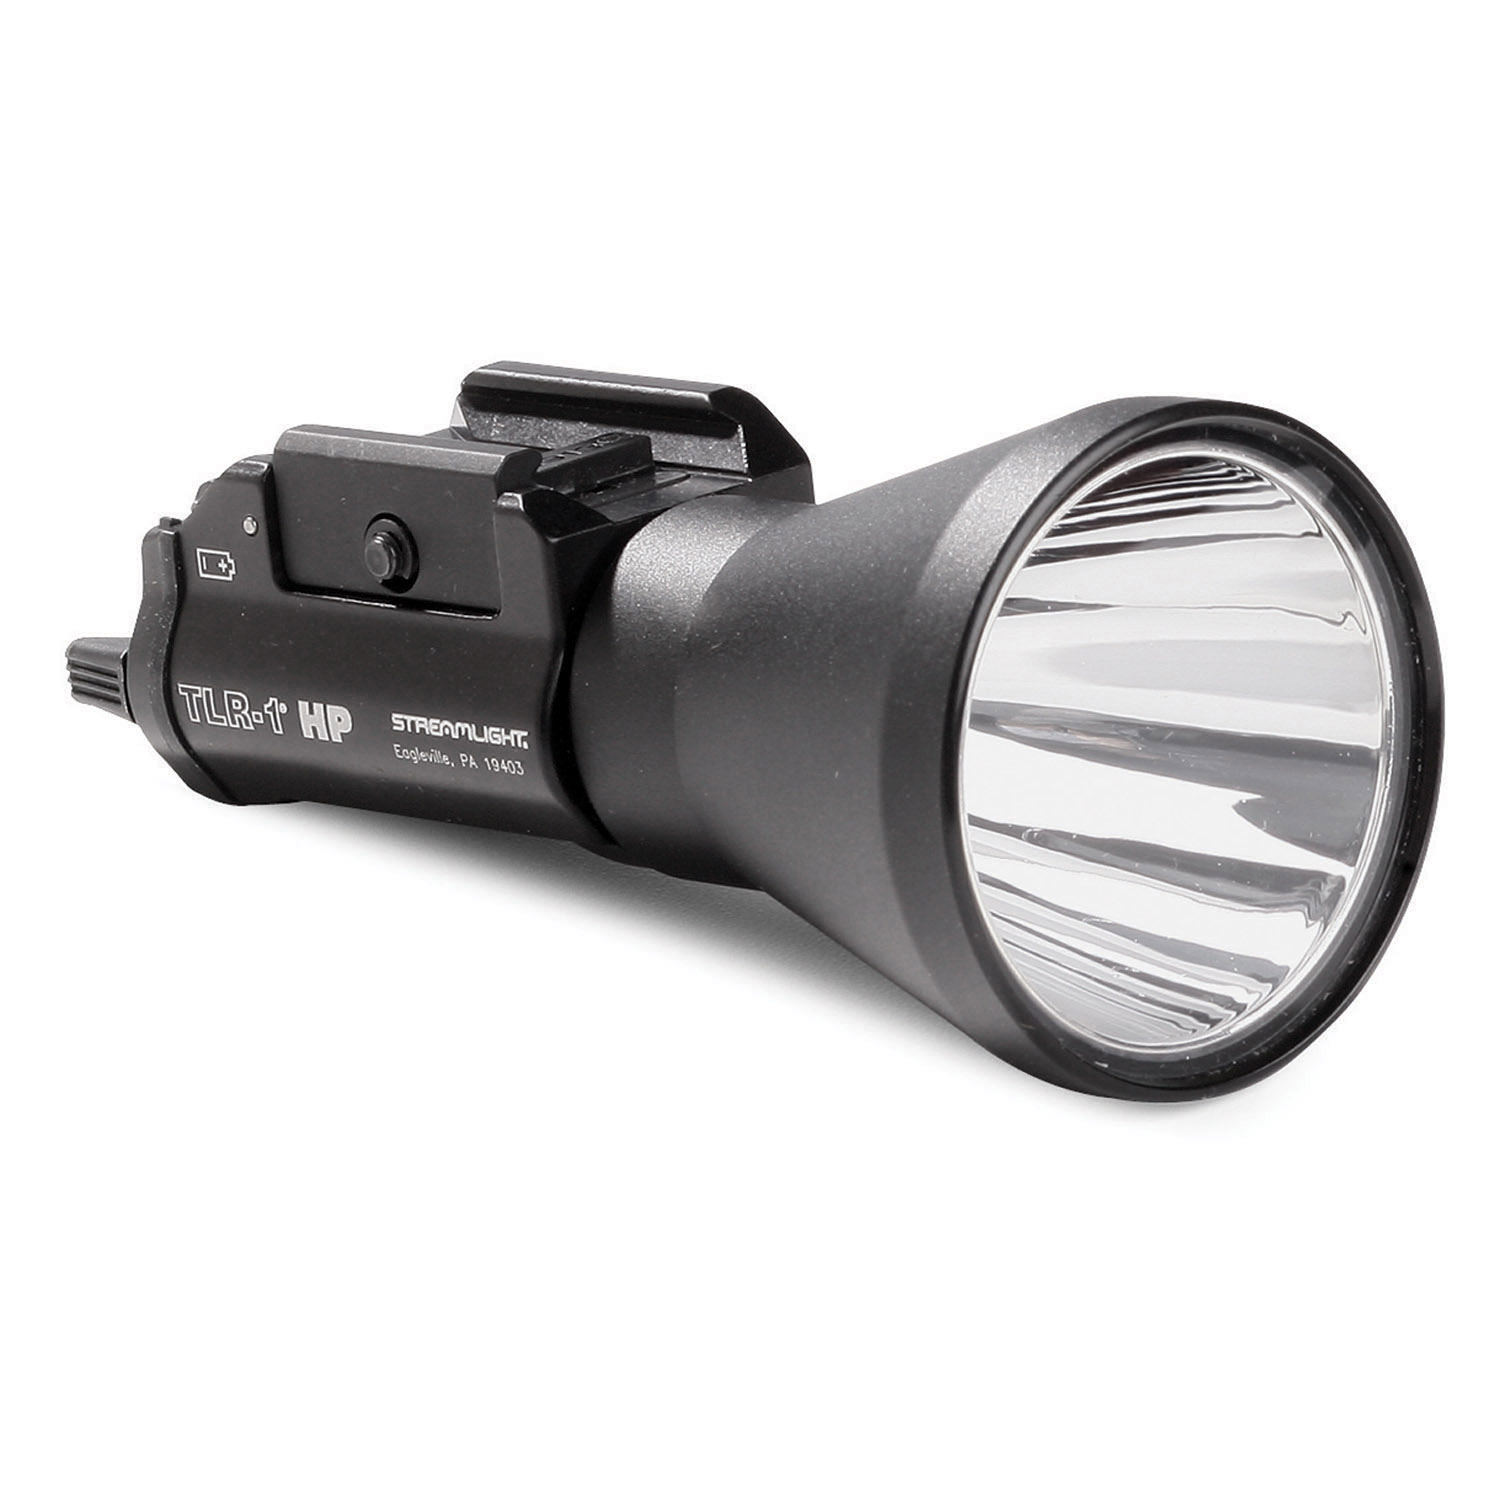 Streamlight TLR 1s HP RMT Strobing Weapon Light with Remote